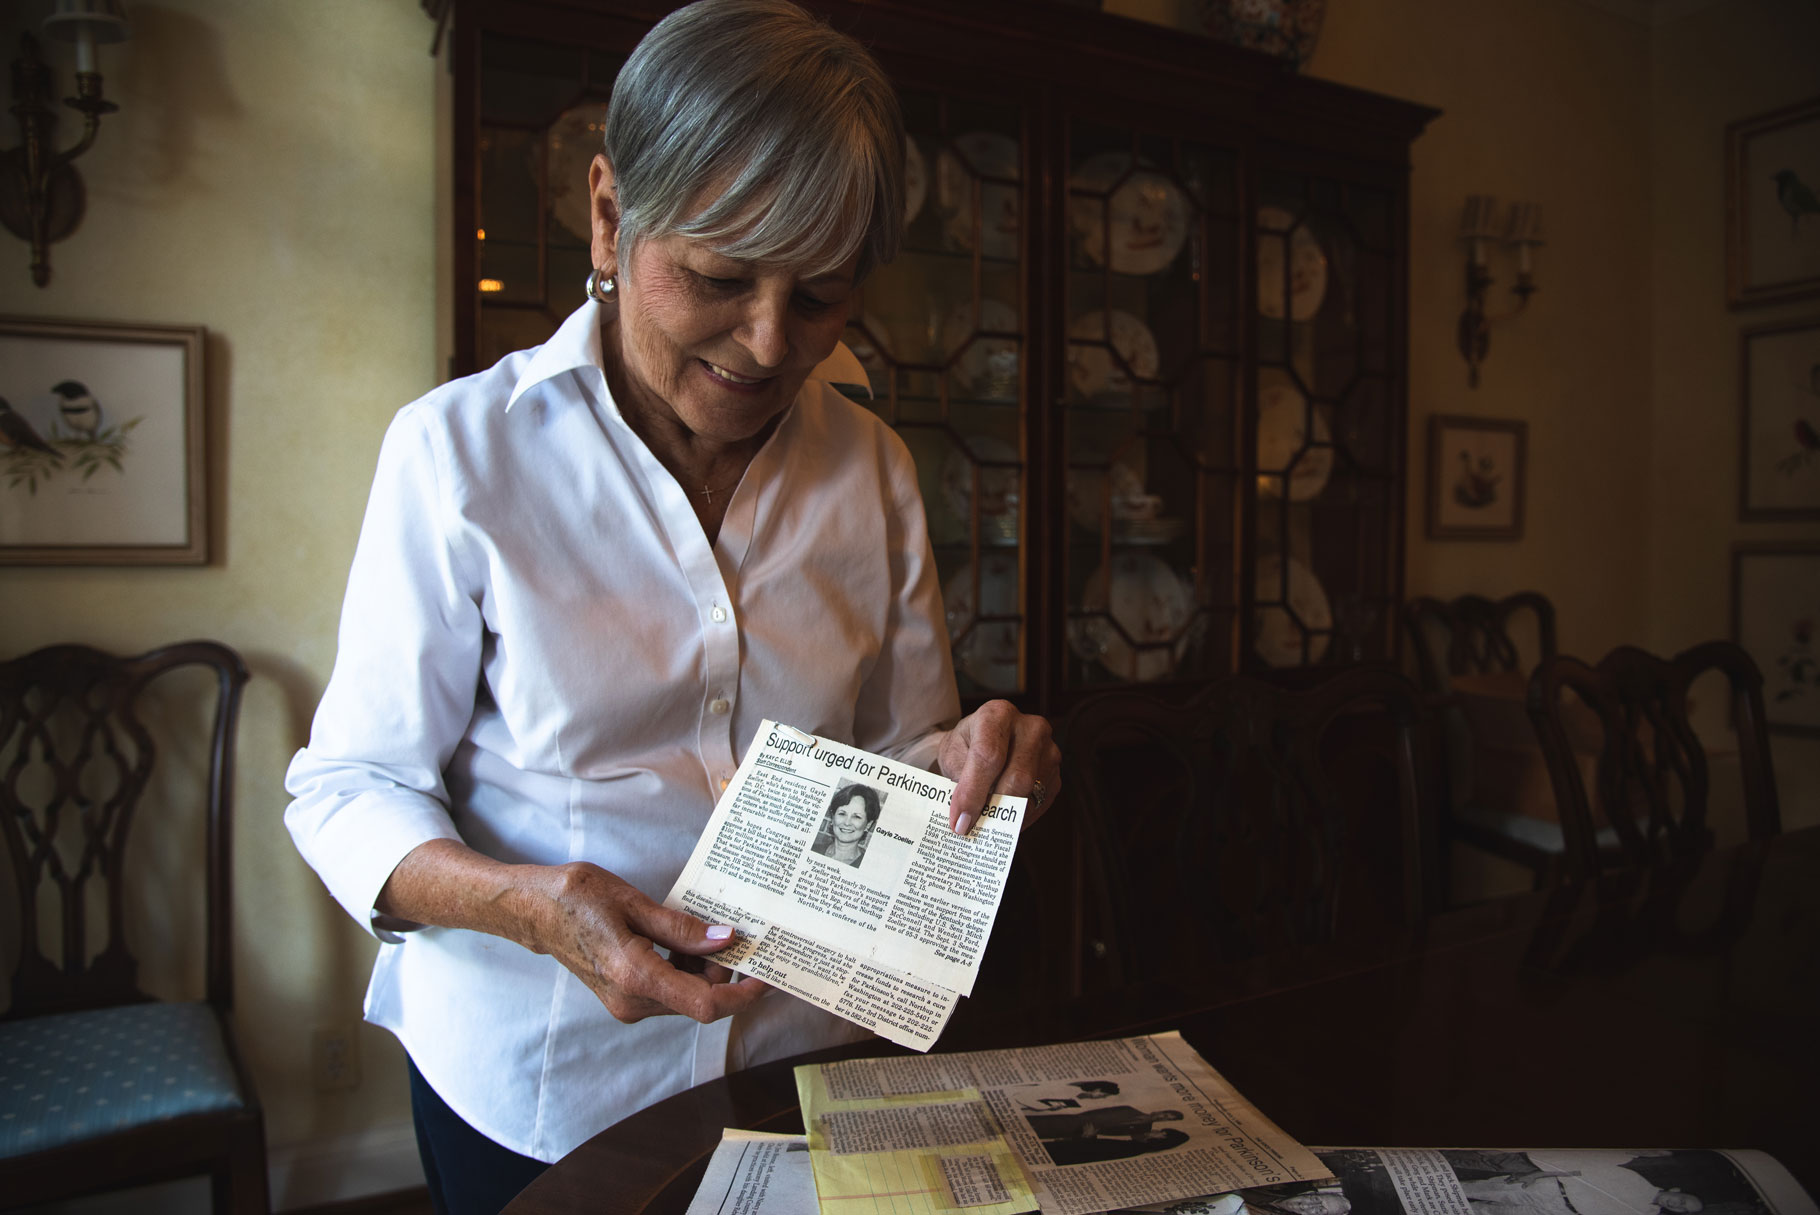 Gayle holds a news clipping about her activism.